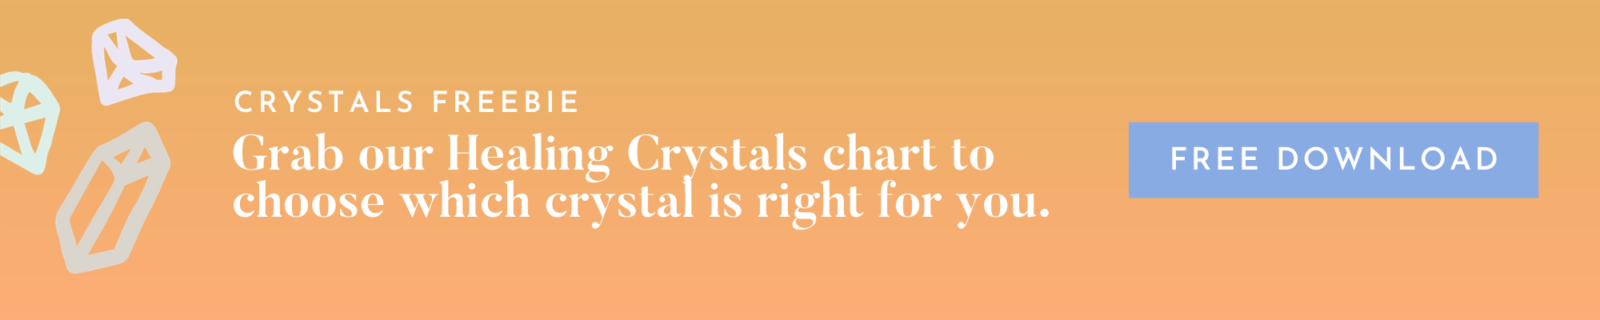 Healing Crystals Chart - Free Download